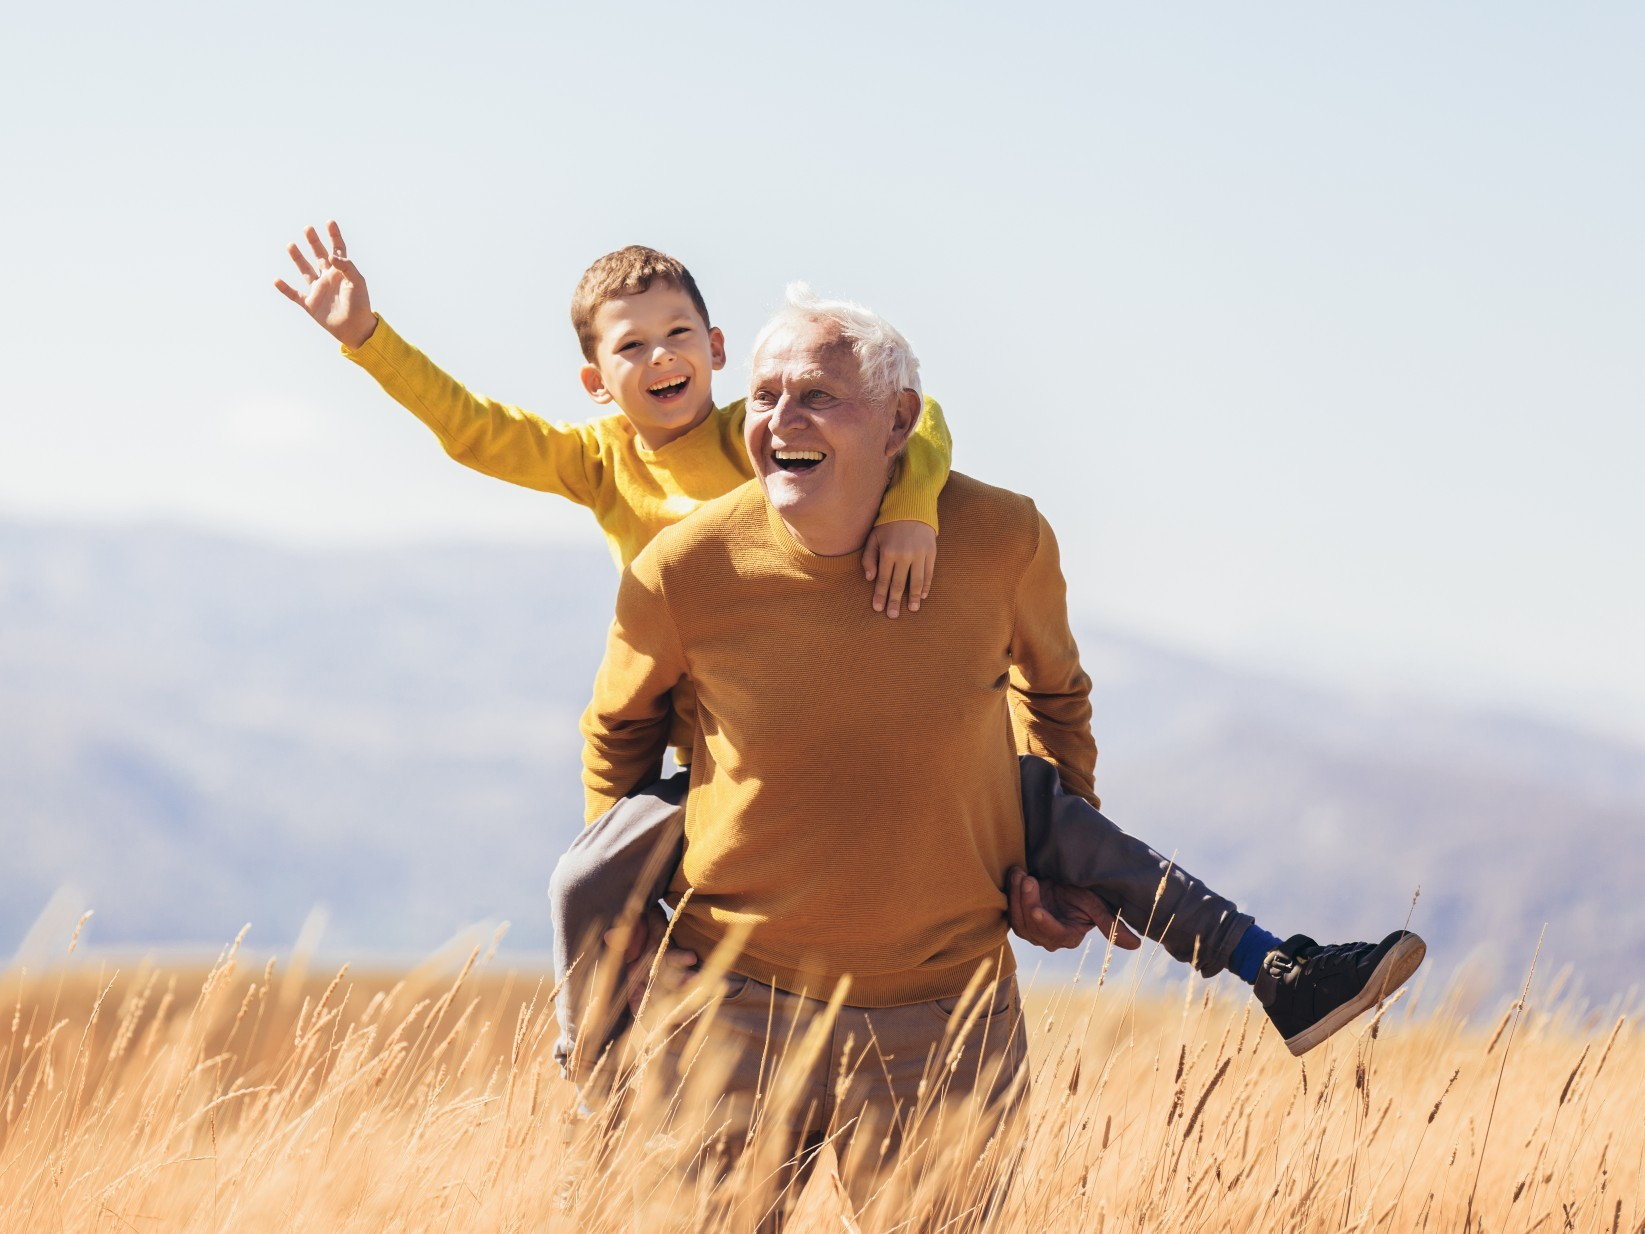 Journey into retirement and how life might change